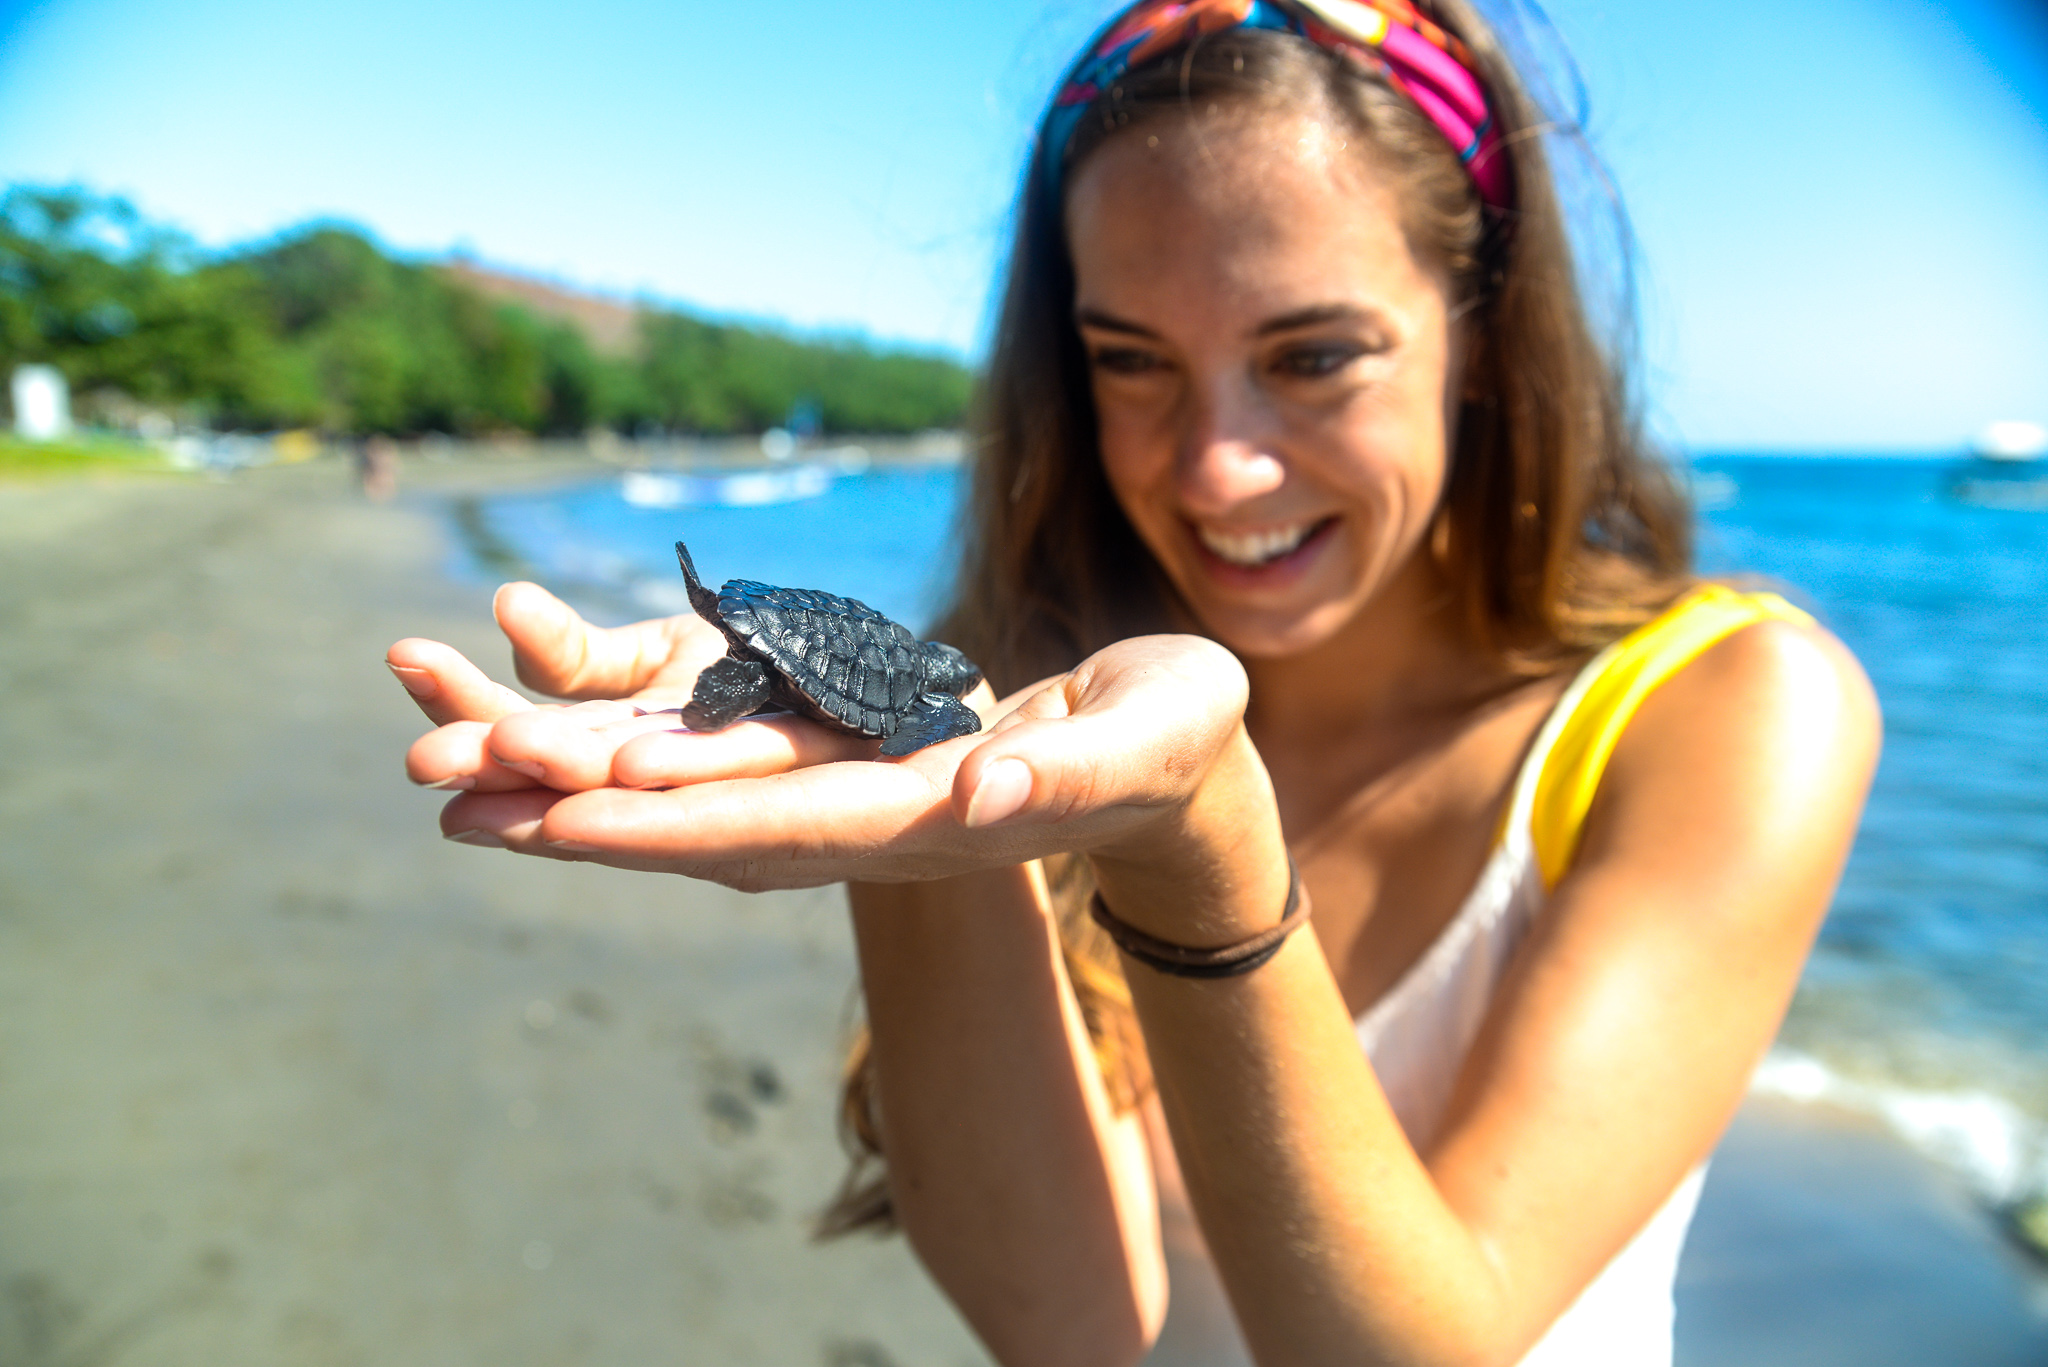 Summer Program - Animal Rights and Rescue | Travel For Teens: Bali Ultimate Service and Adventure